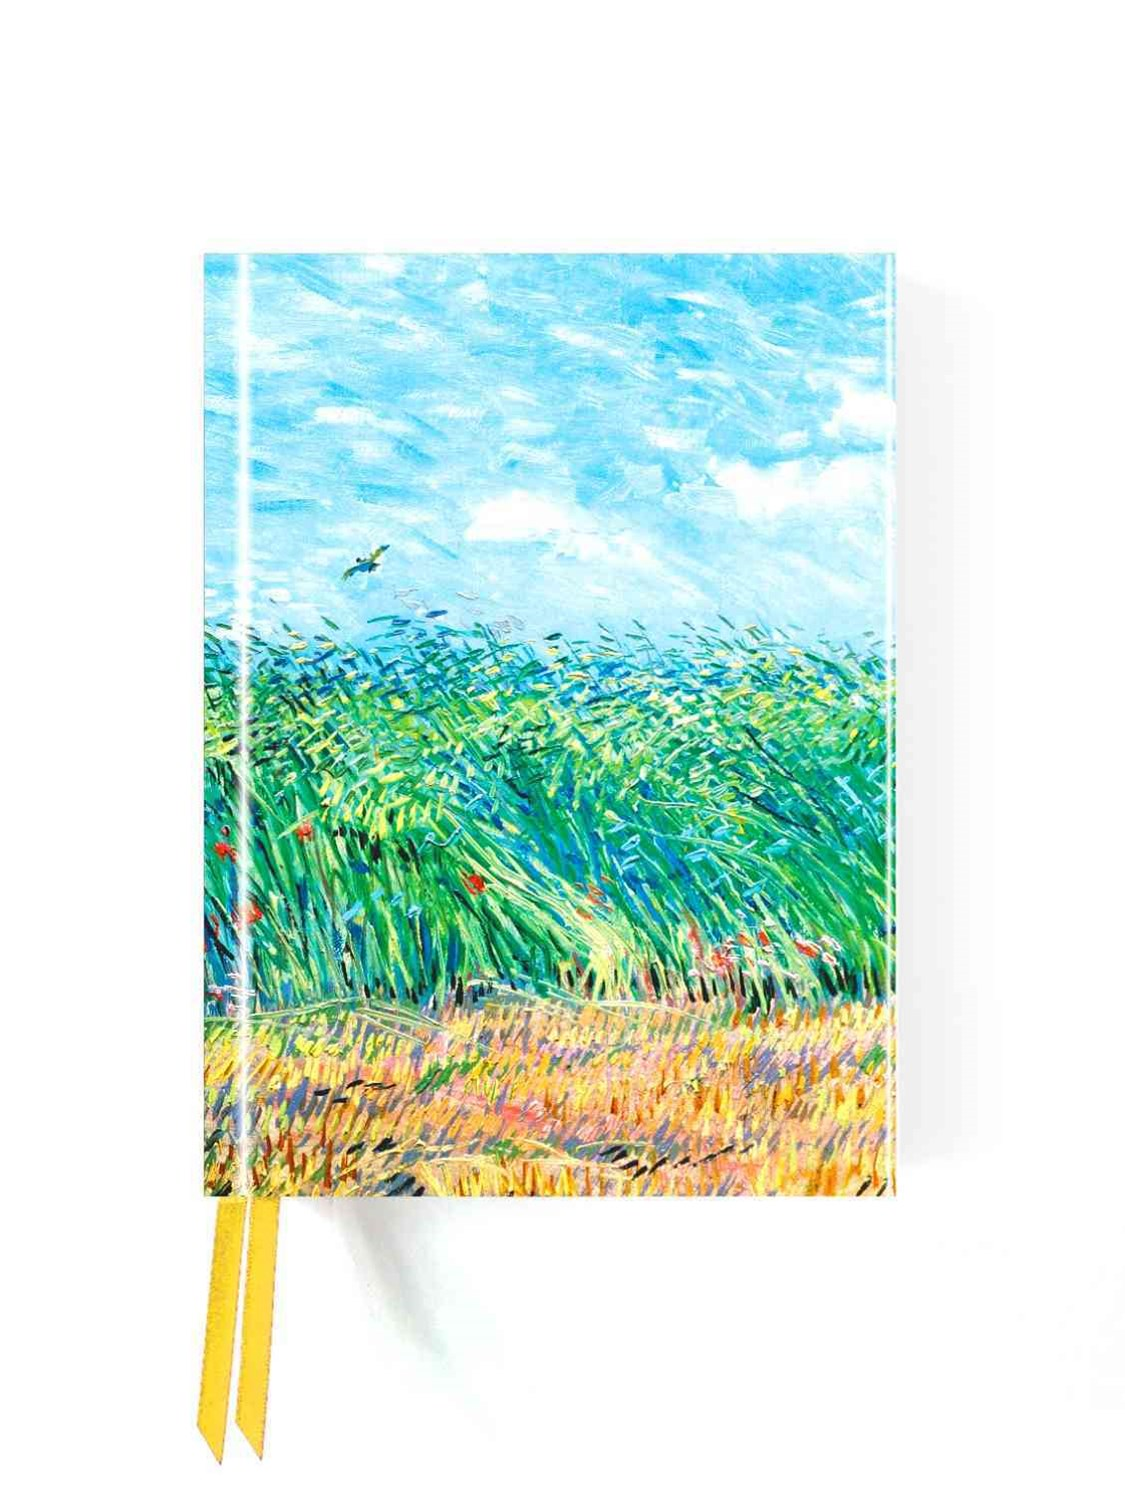 Foiled Journal #99: Wheat Field with Lark Van Gogh